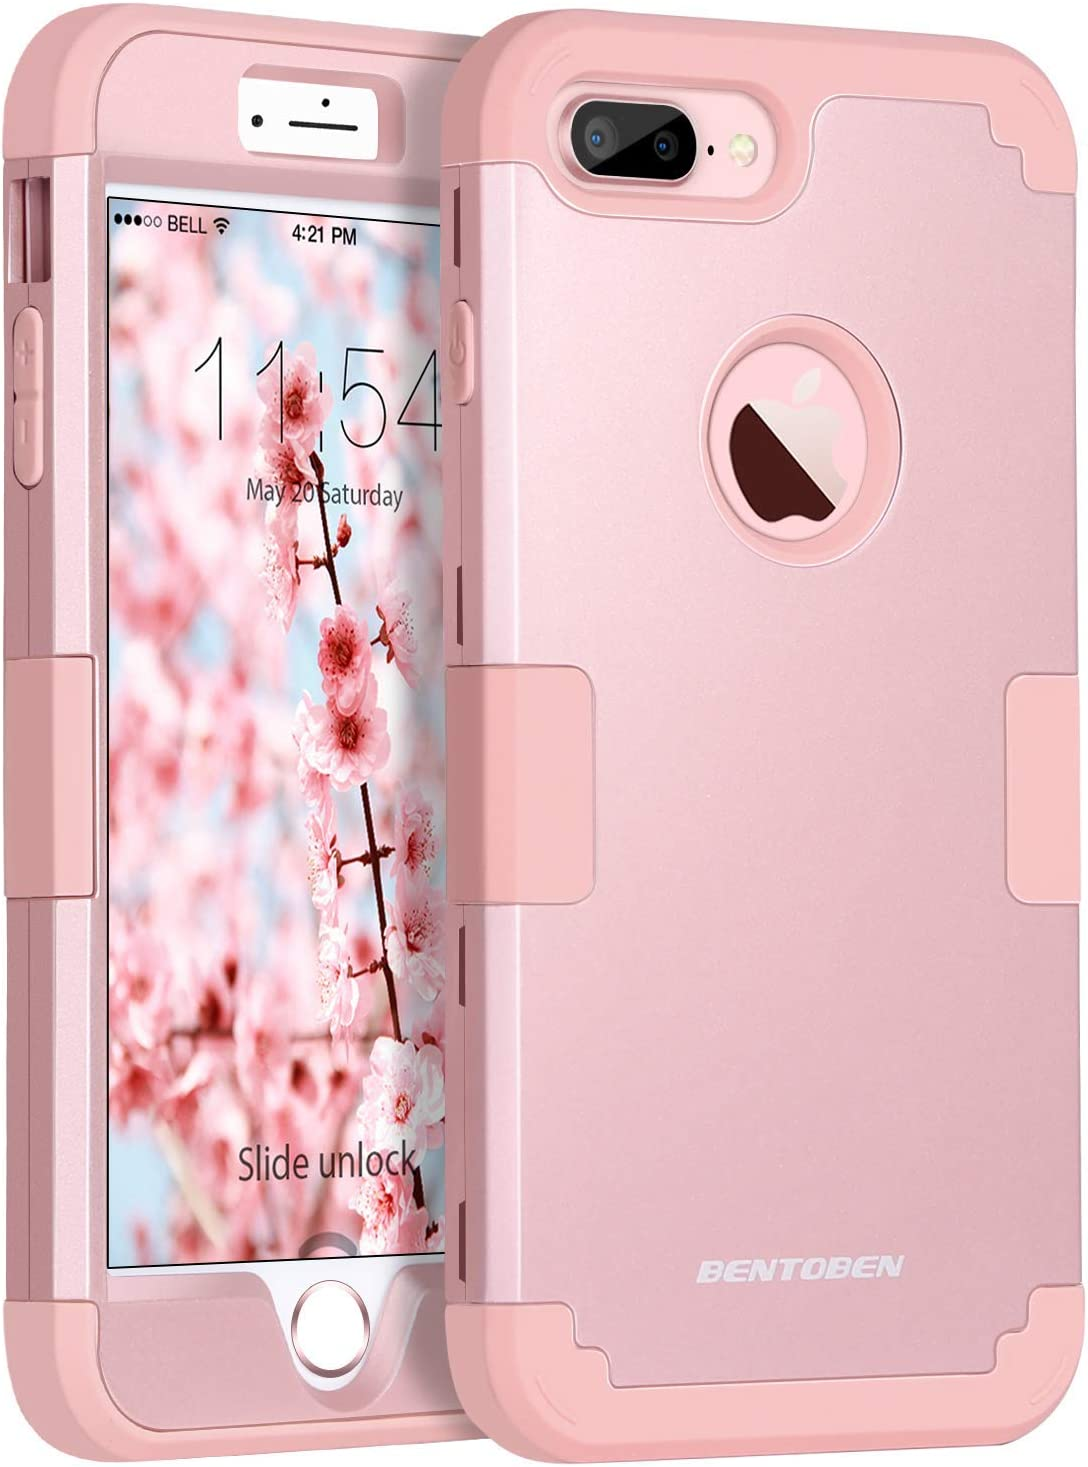 BENTOBEN Case for iPhone 8 Plus / 7 Plus 3 in 1 Heavy Duty Slim Shockproof Drop Protection Hybrid Hard PC Covers Soft Rubber Bumper Protective Case for iPhone 8 Plus / 7 Plus Rose Gold